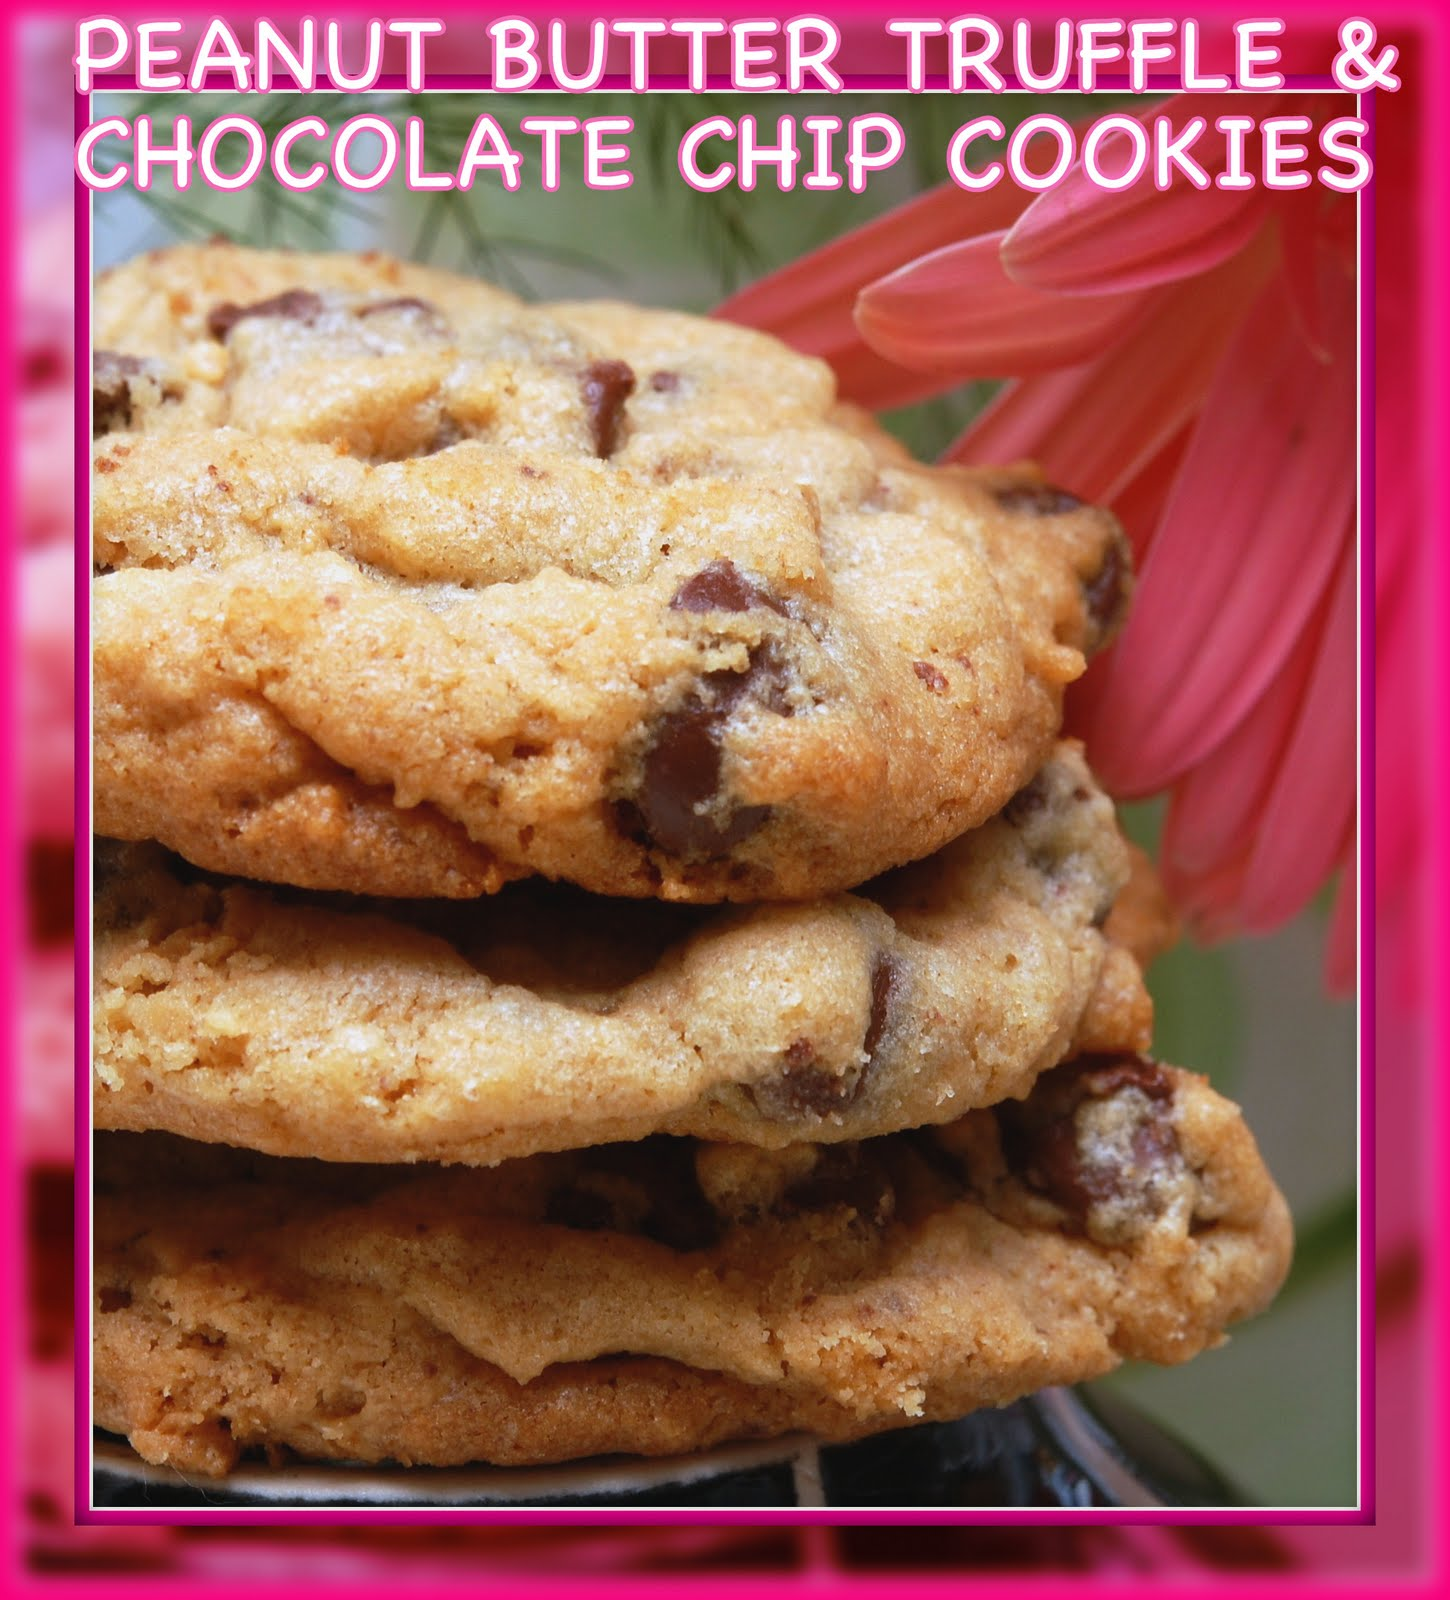 Chocolate Chip And Peanut Butter Truffle Swirled Cookies Recipes ...